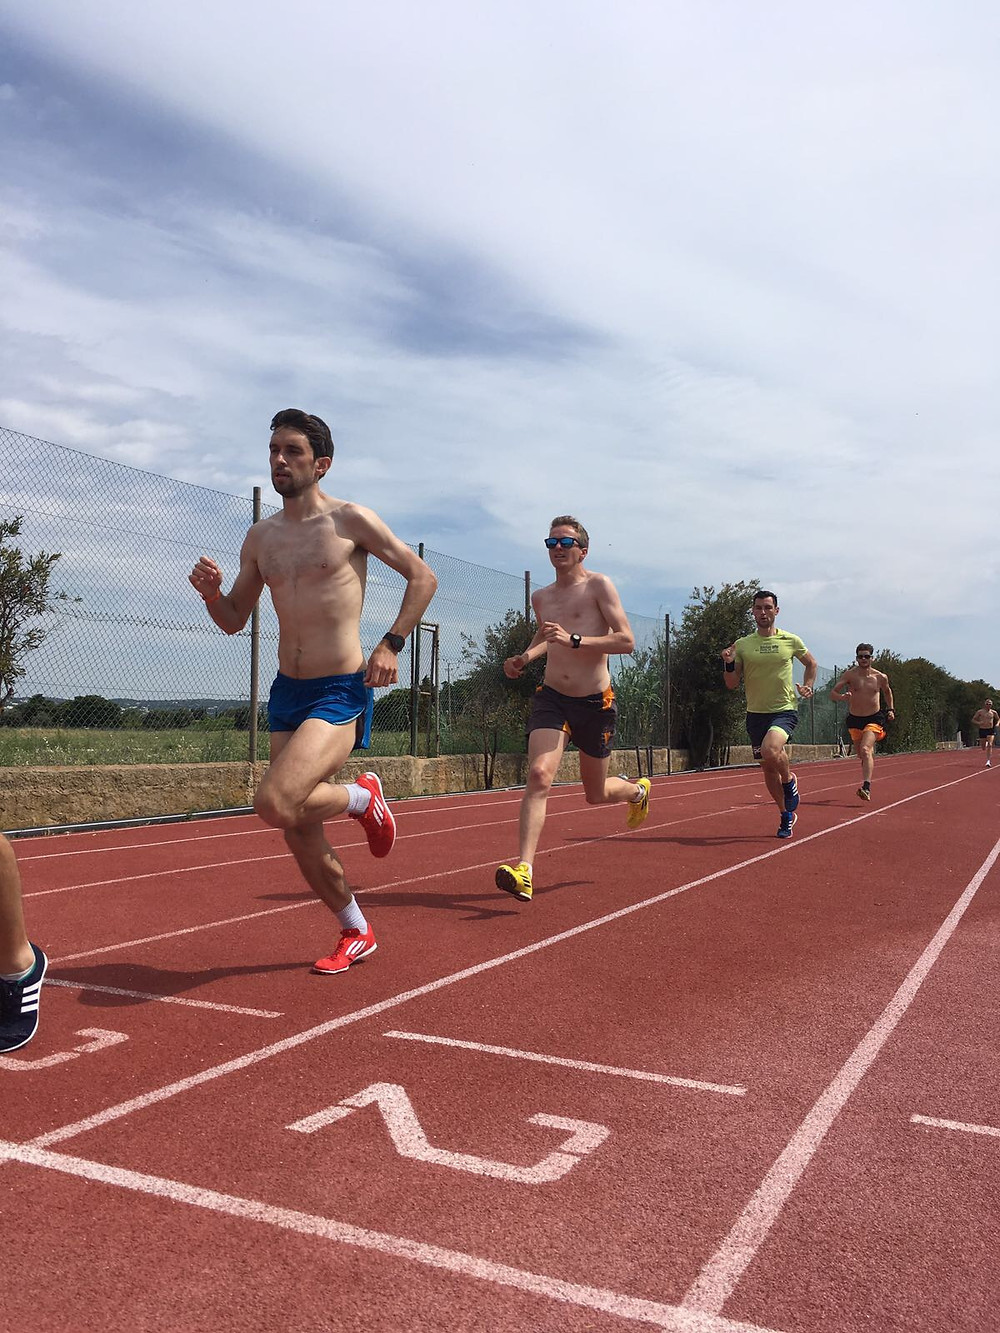 the guys working hard during their track session